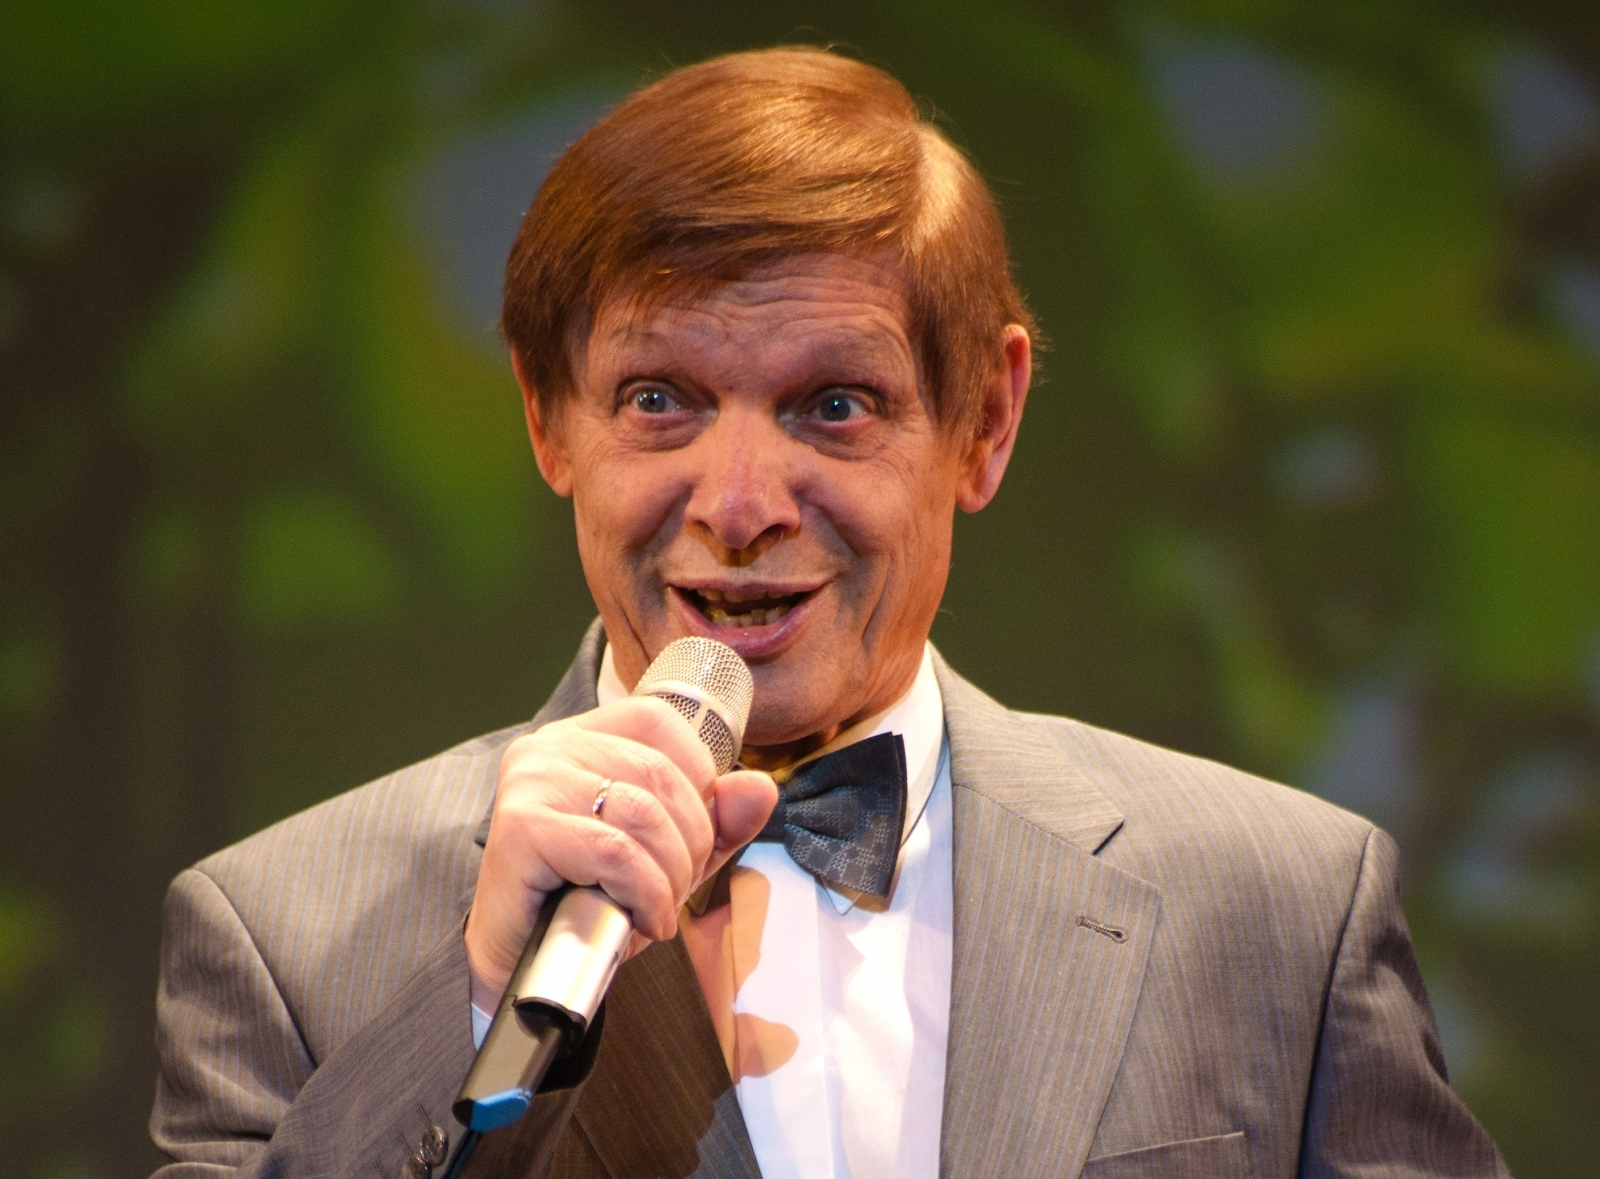 Google Doodle celebrates Eduard 'Mr. Trololo' Khil's birthday